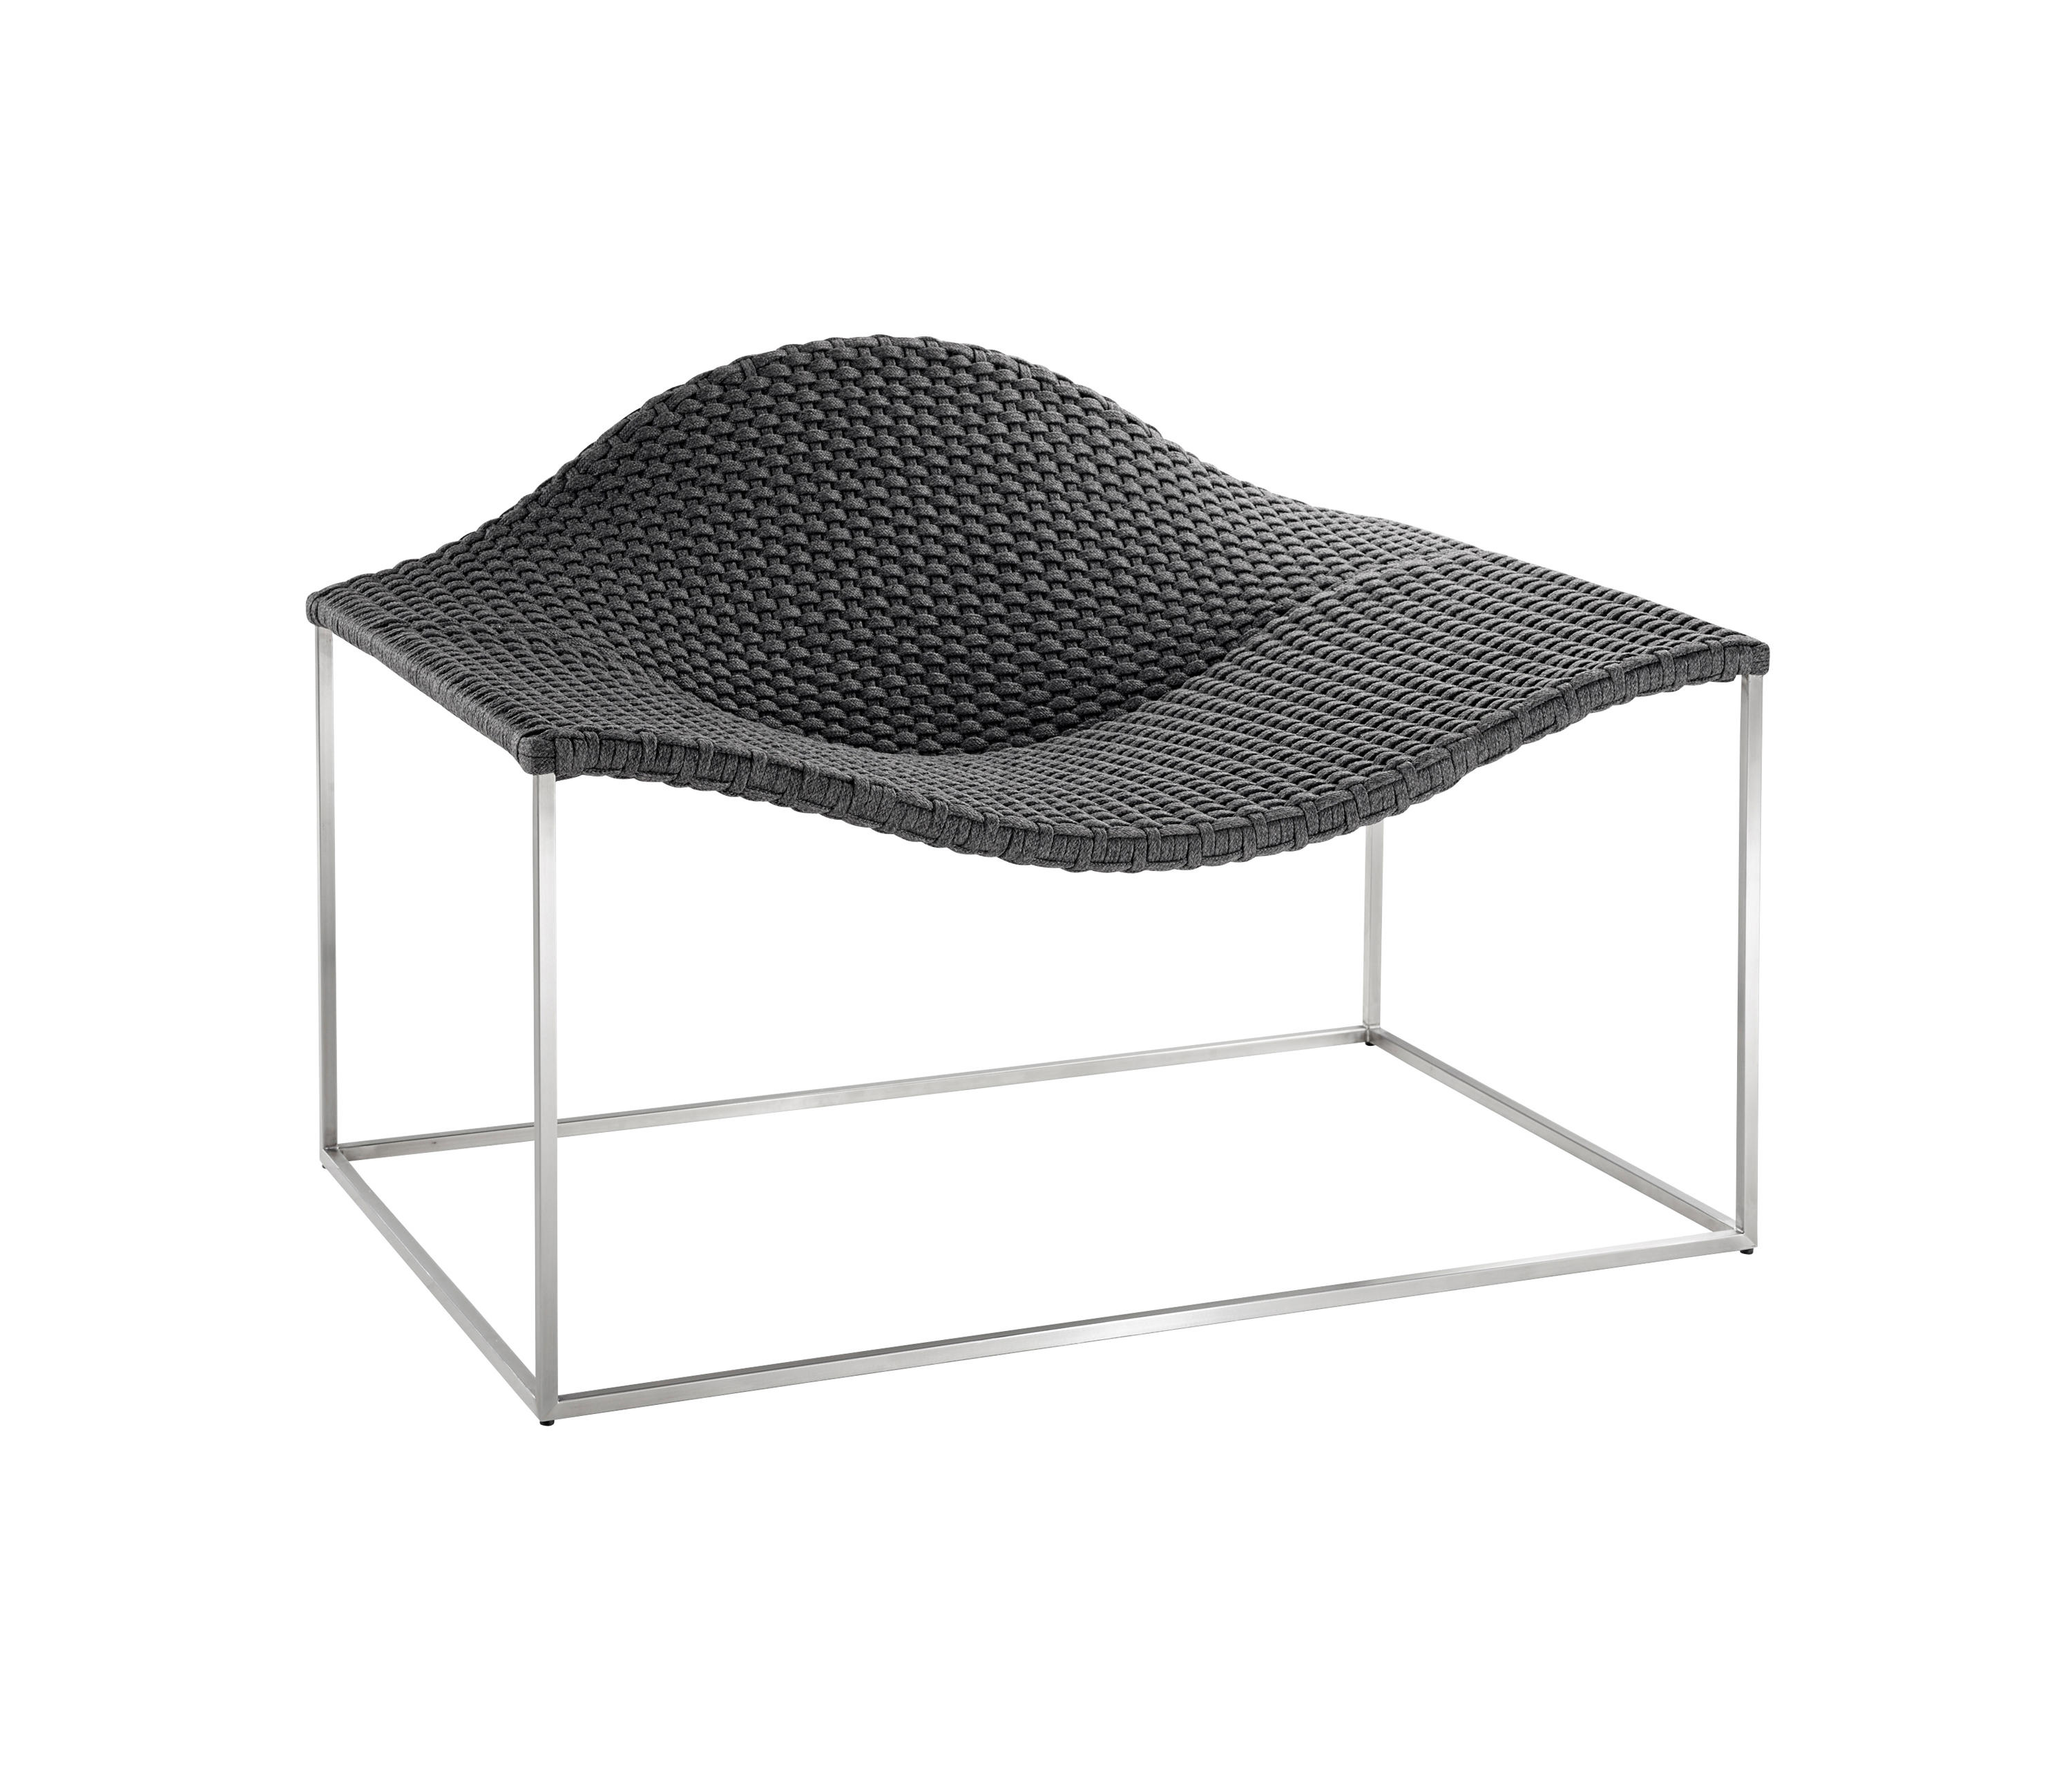 ... Wave Lounge Chair By Solpuri | Garden Armchairs ...